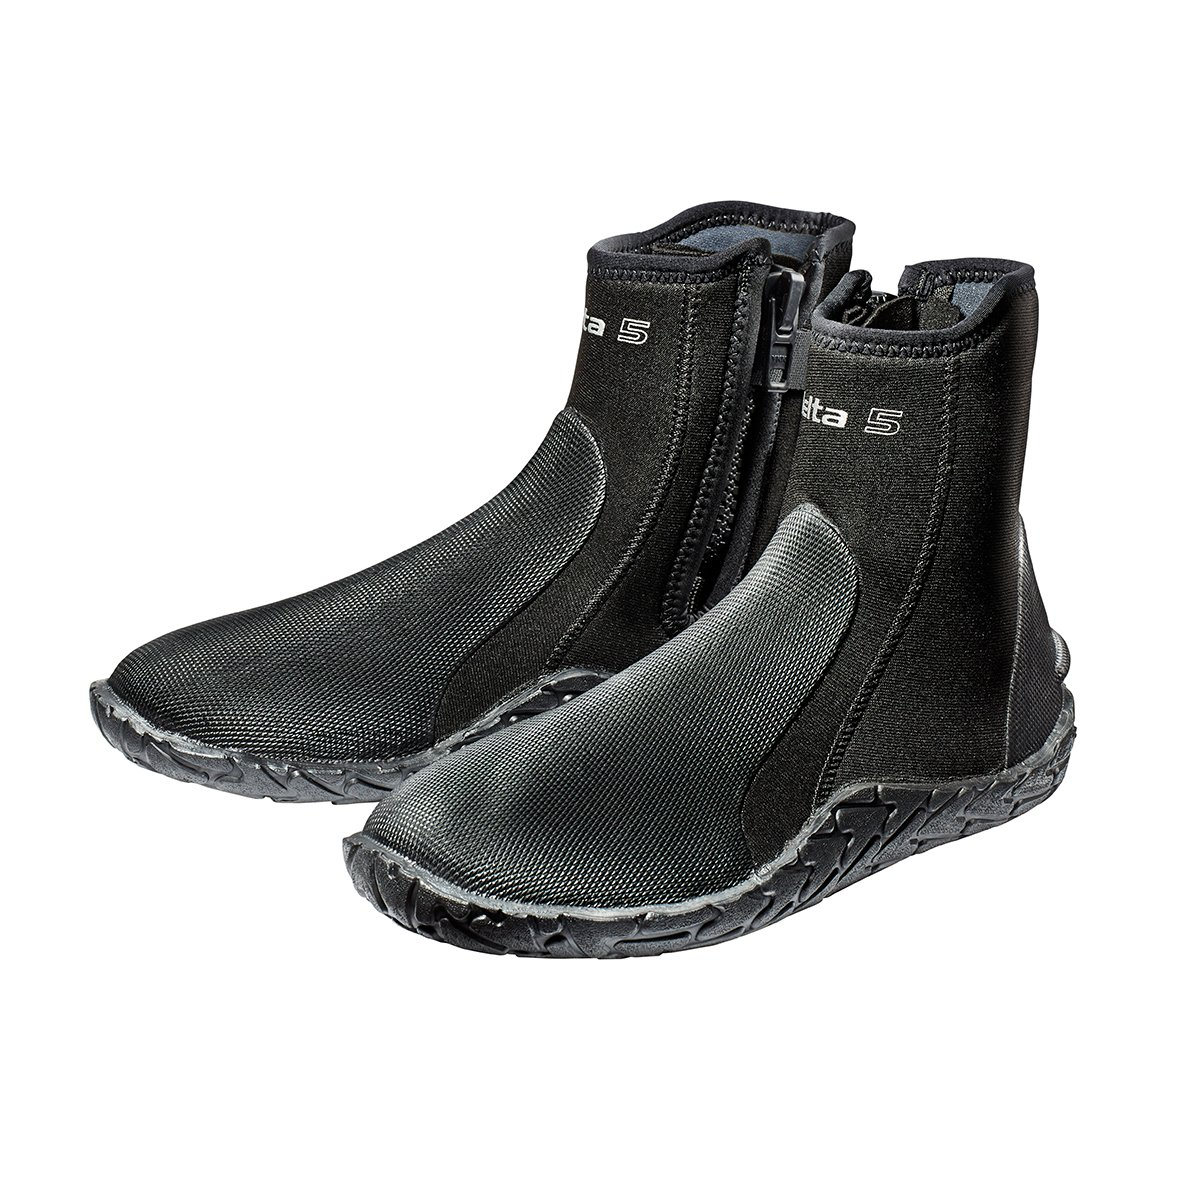 Delta Boots, 5mm New Style